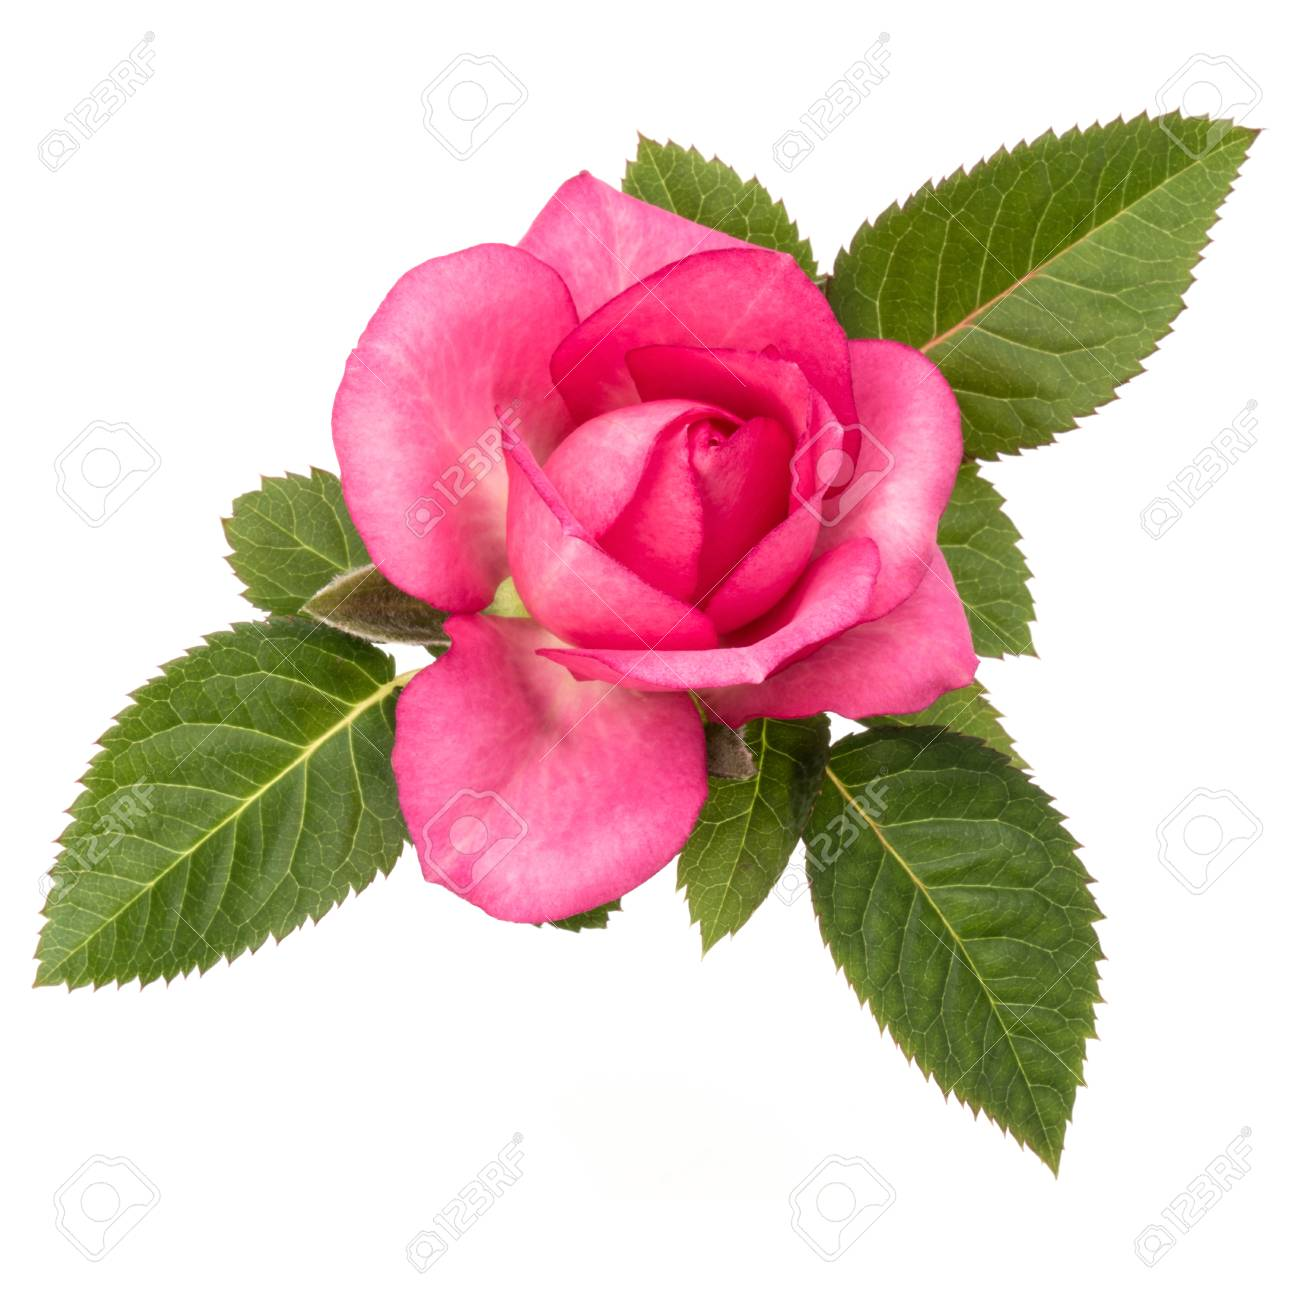 One pink rose flower with leaves isolated on white background one pink rose flower with leaves isolated on white background cutout stock photo 88649105 mightylinksfo